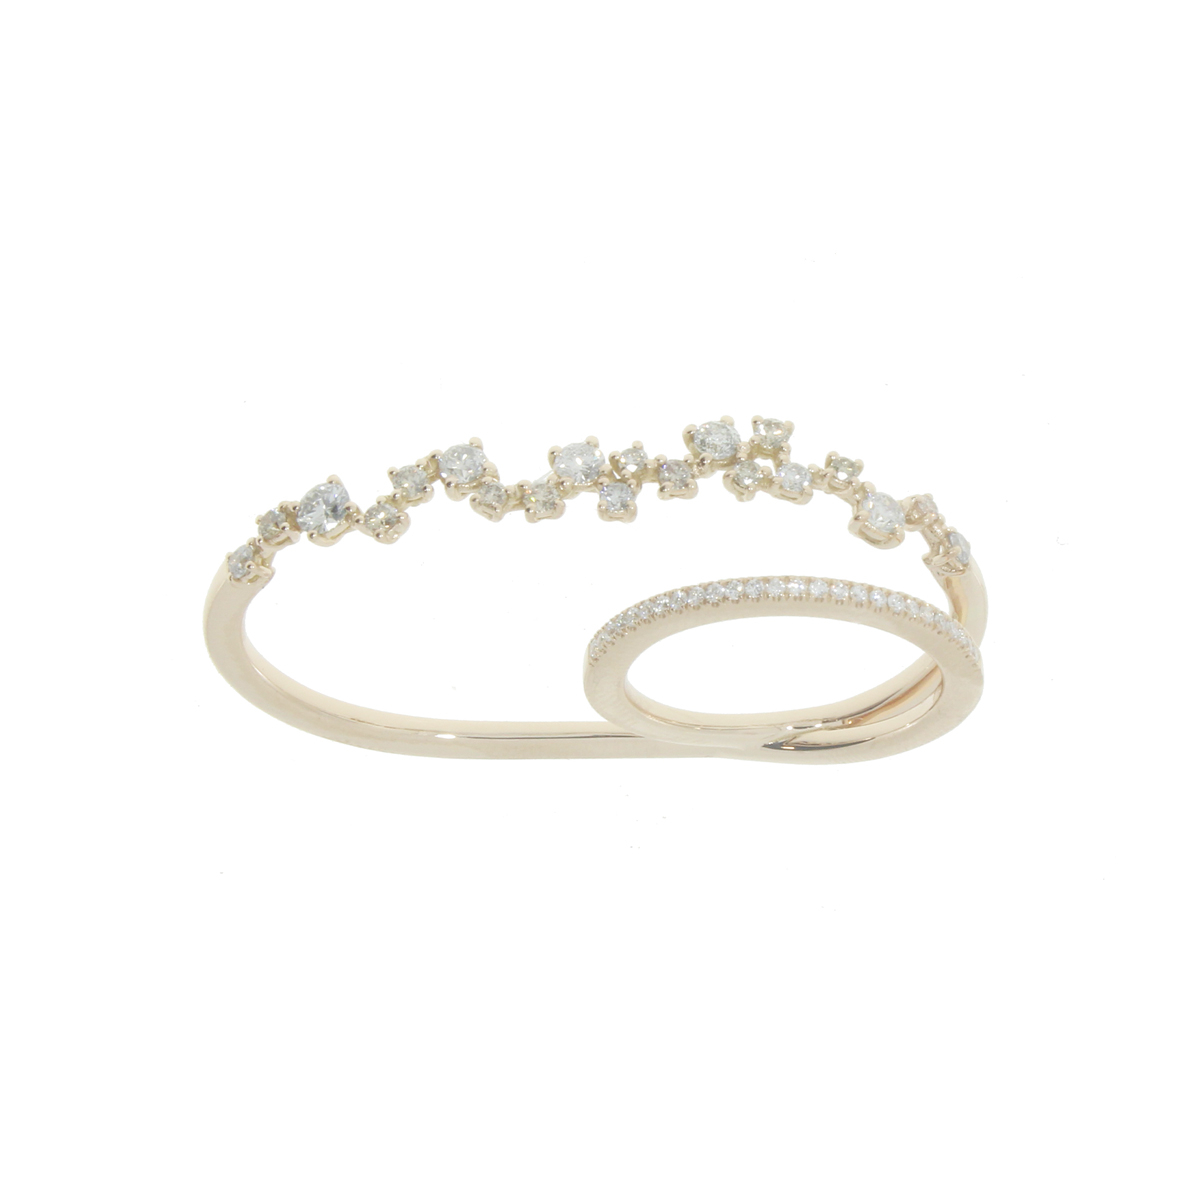 18Kt Yellow Gold Two-Finger Ring with Diamonds